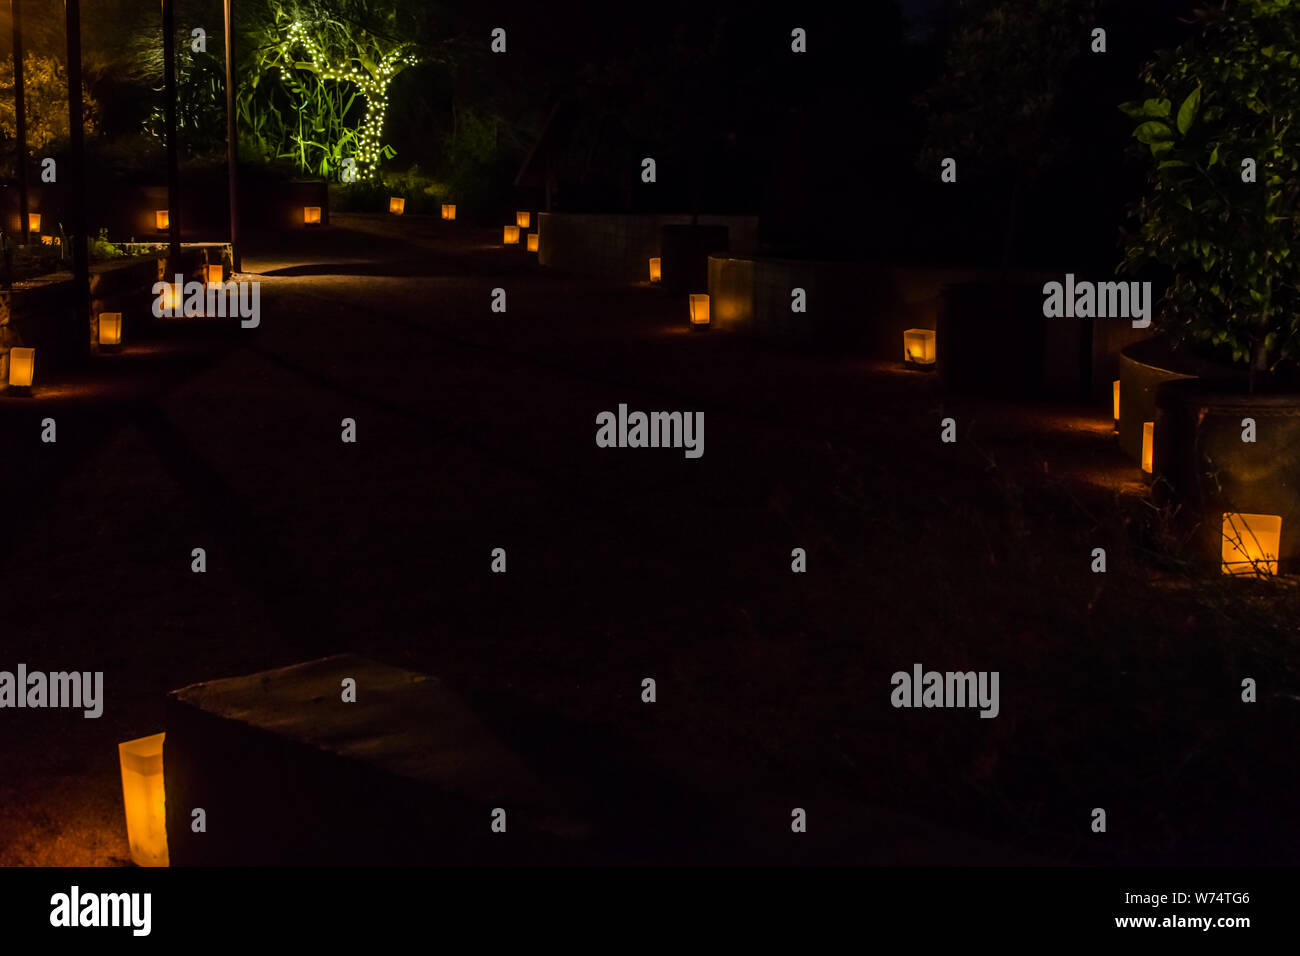 Las Noches De Las Luminarias High Resolution Stock Photography And Images Alamy